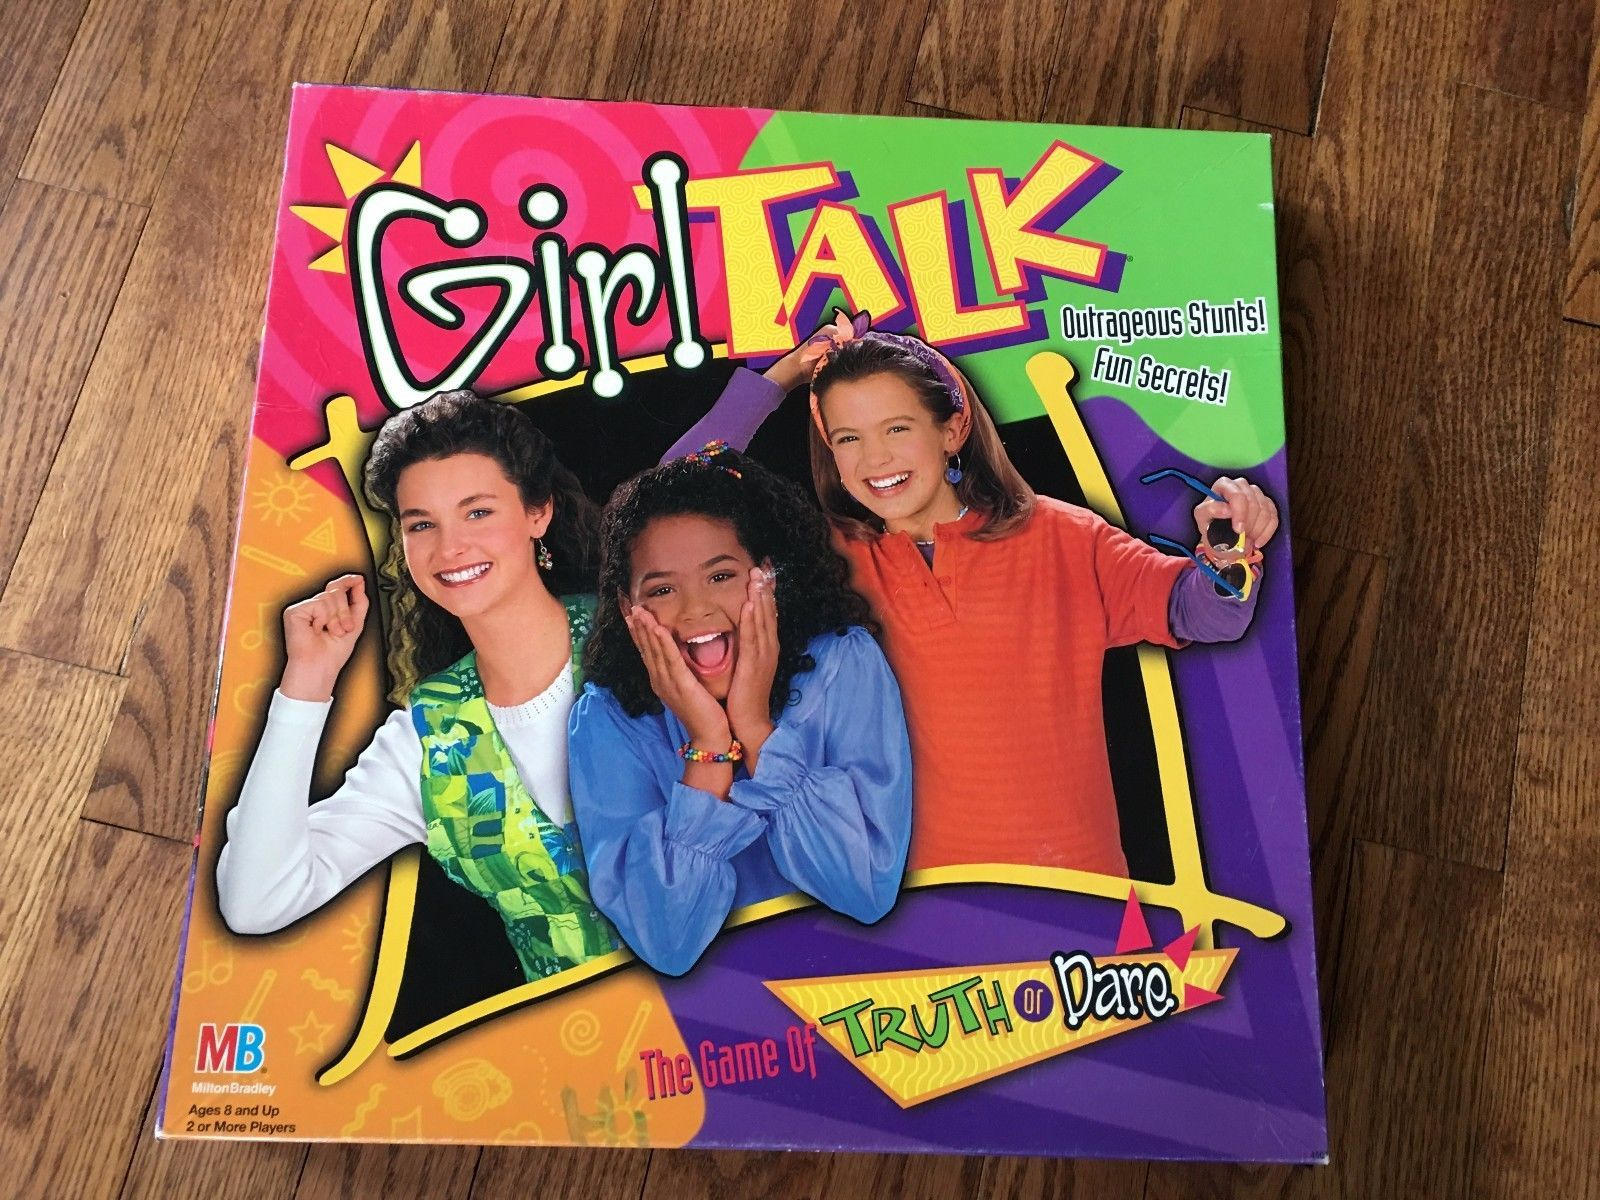 Spiele Girl Talk The Game of Truth or Dare 1995 Edition